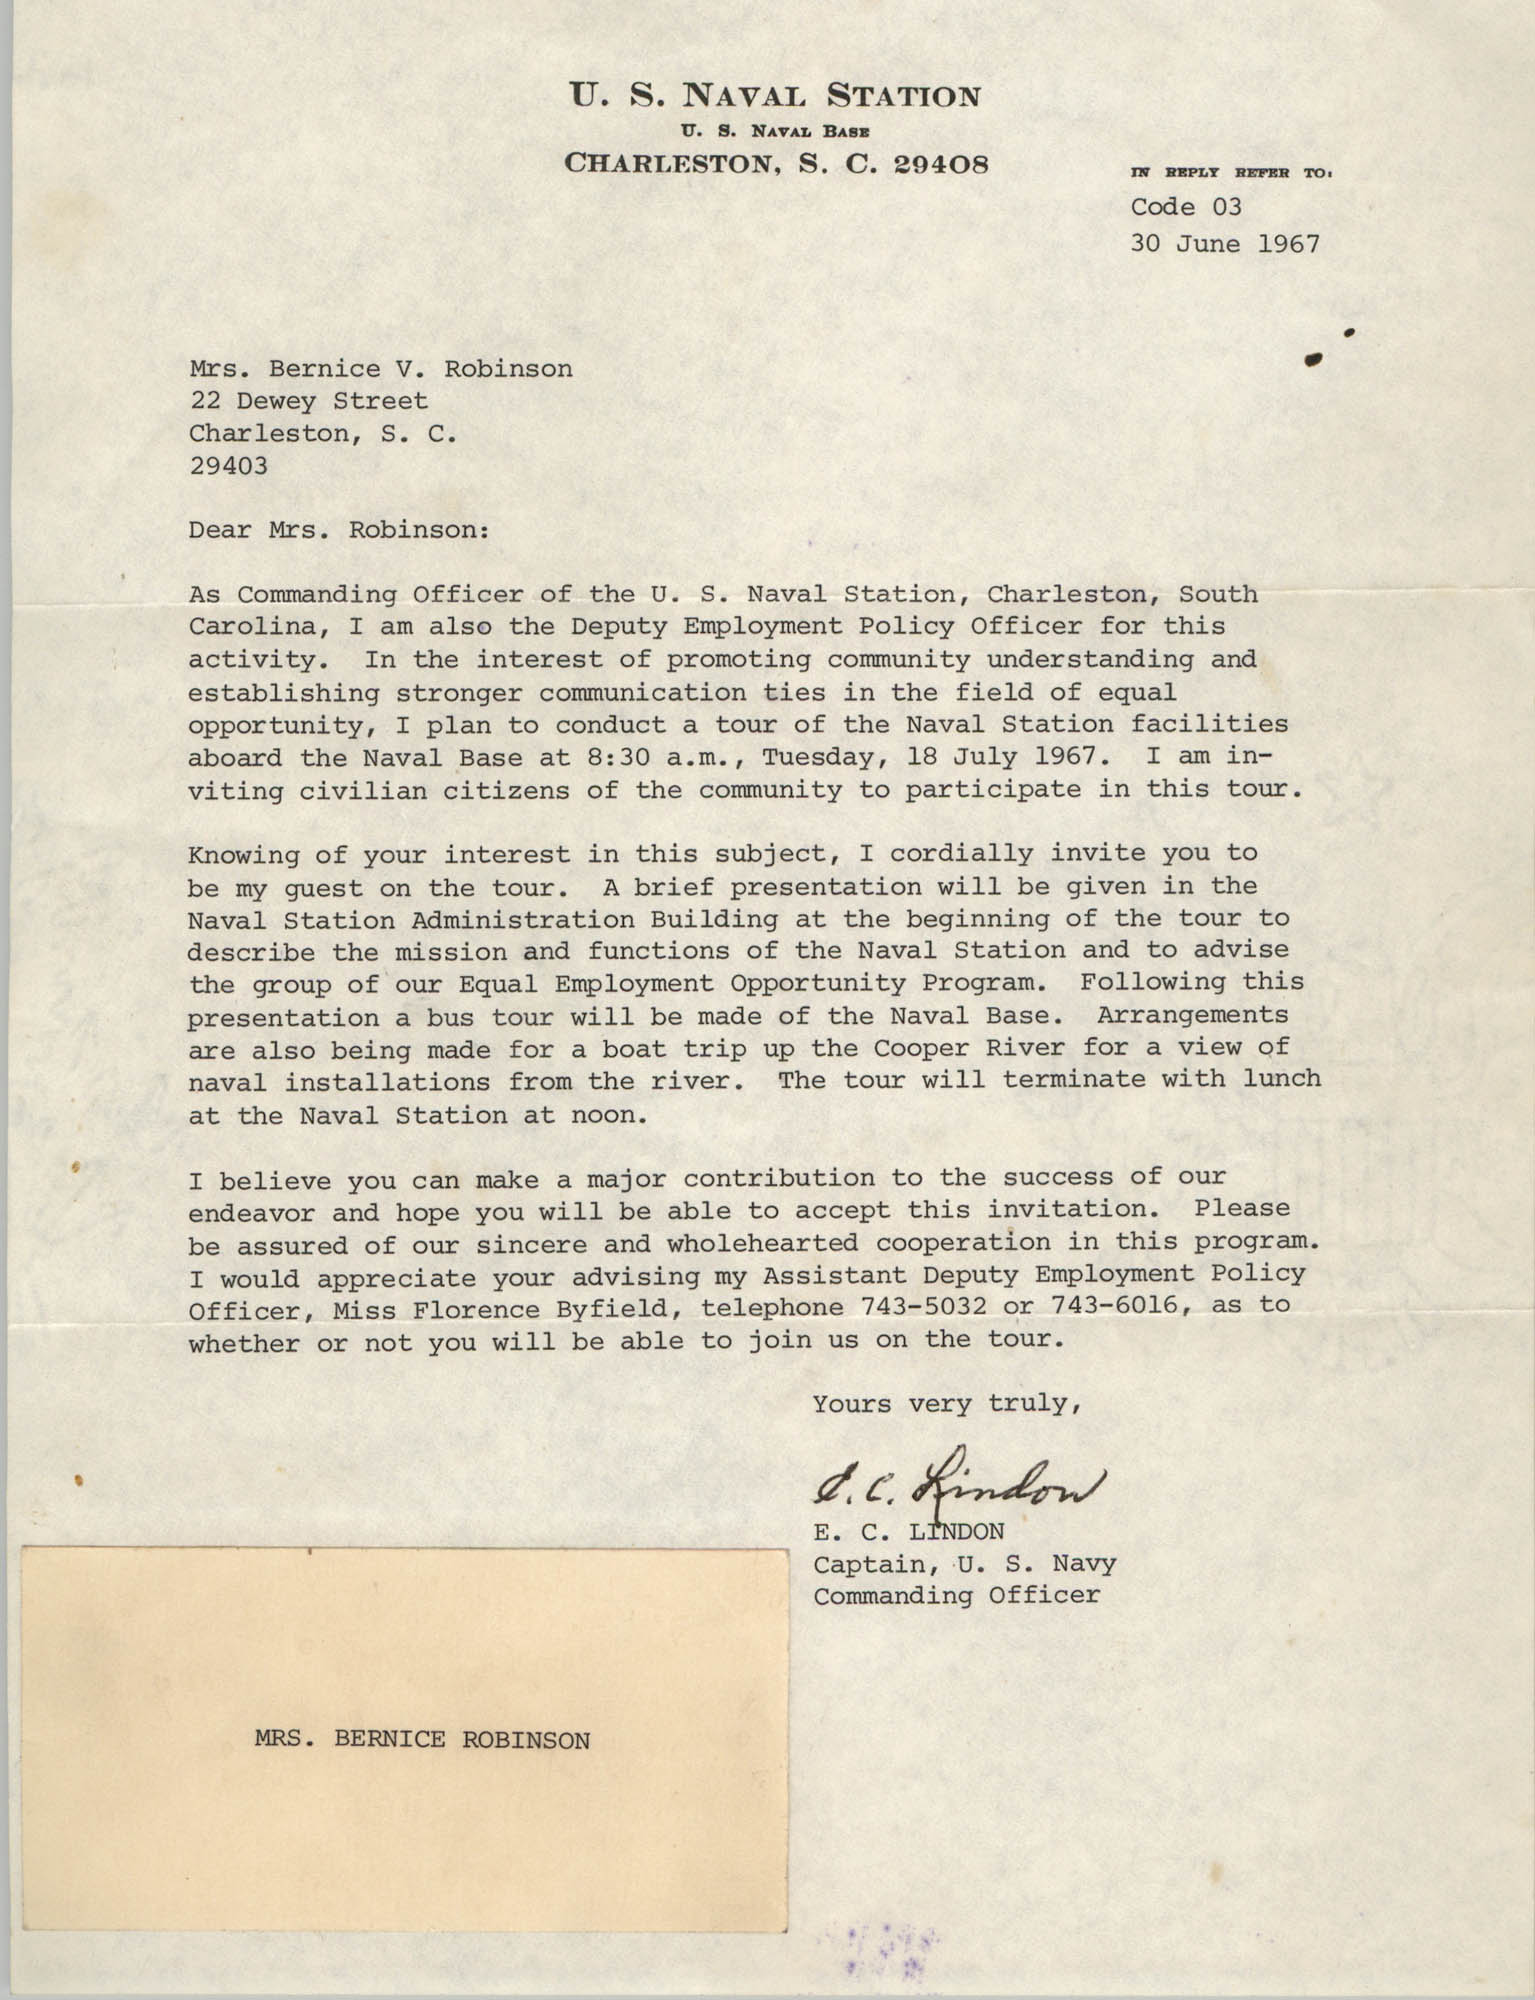 Letter from E. C. Lindon to Bernice V. Robinson, June 30, 1967